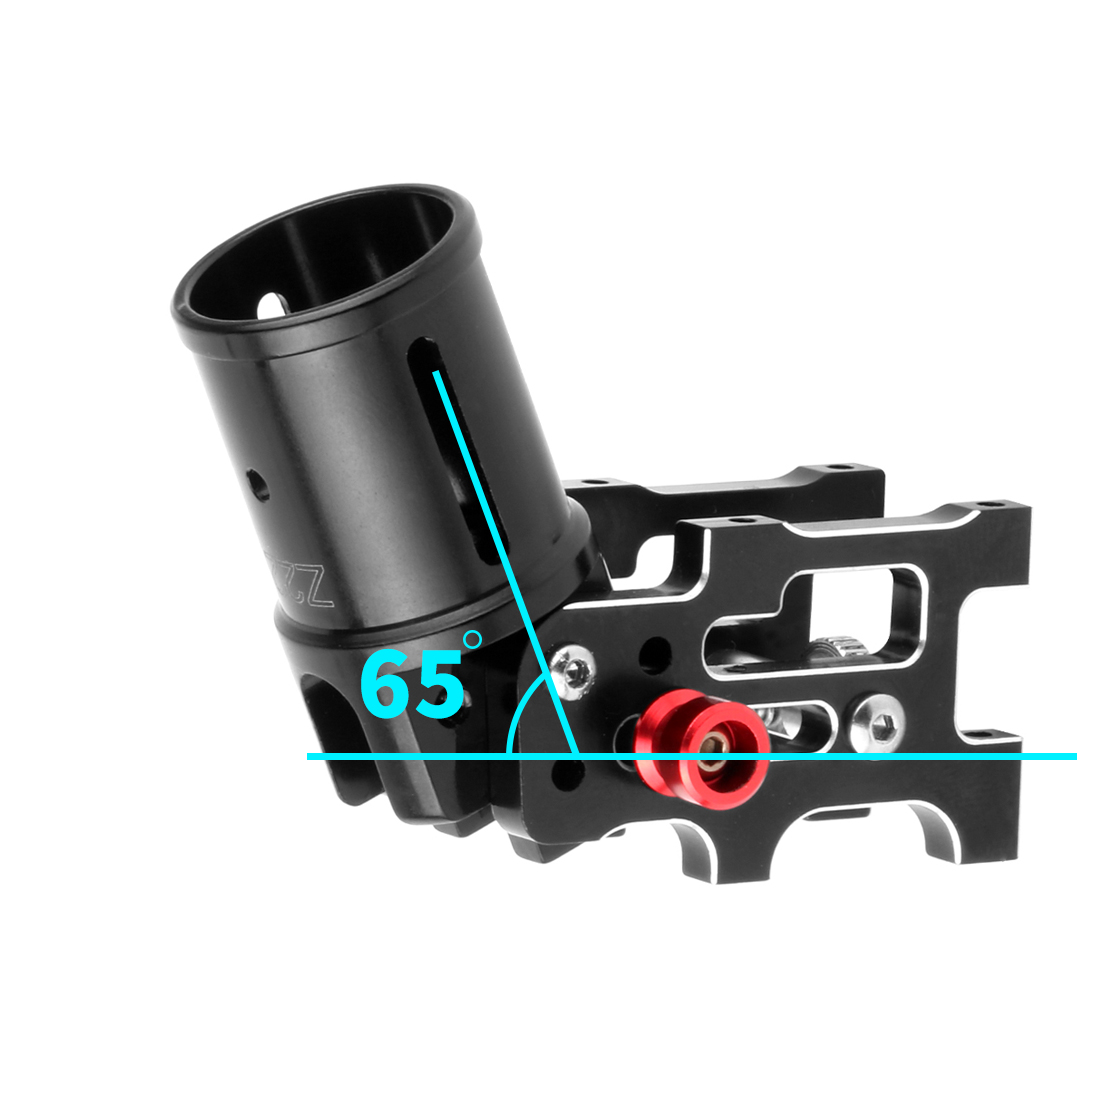 1PC 22mm 16mm Aluminum Alloy Folding Frame Arm Foldable Tube Connector Joint for Landing Gear RC Multicopter Drone Parts in Drone Accessories Kits from Consumer Electronics